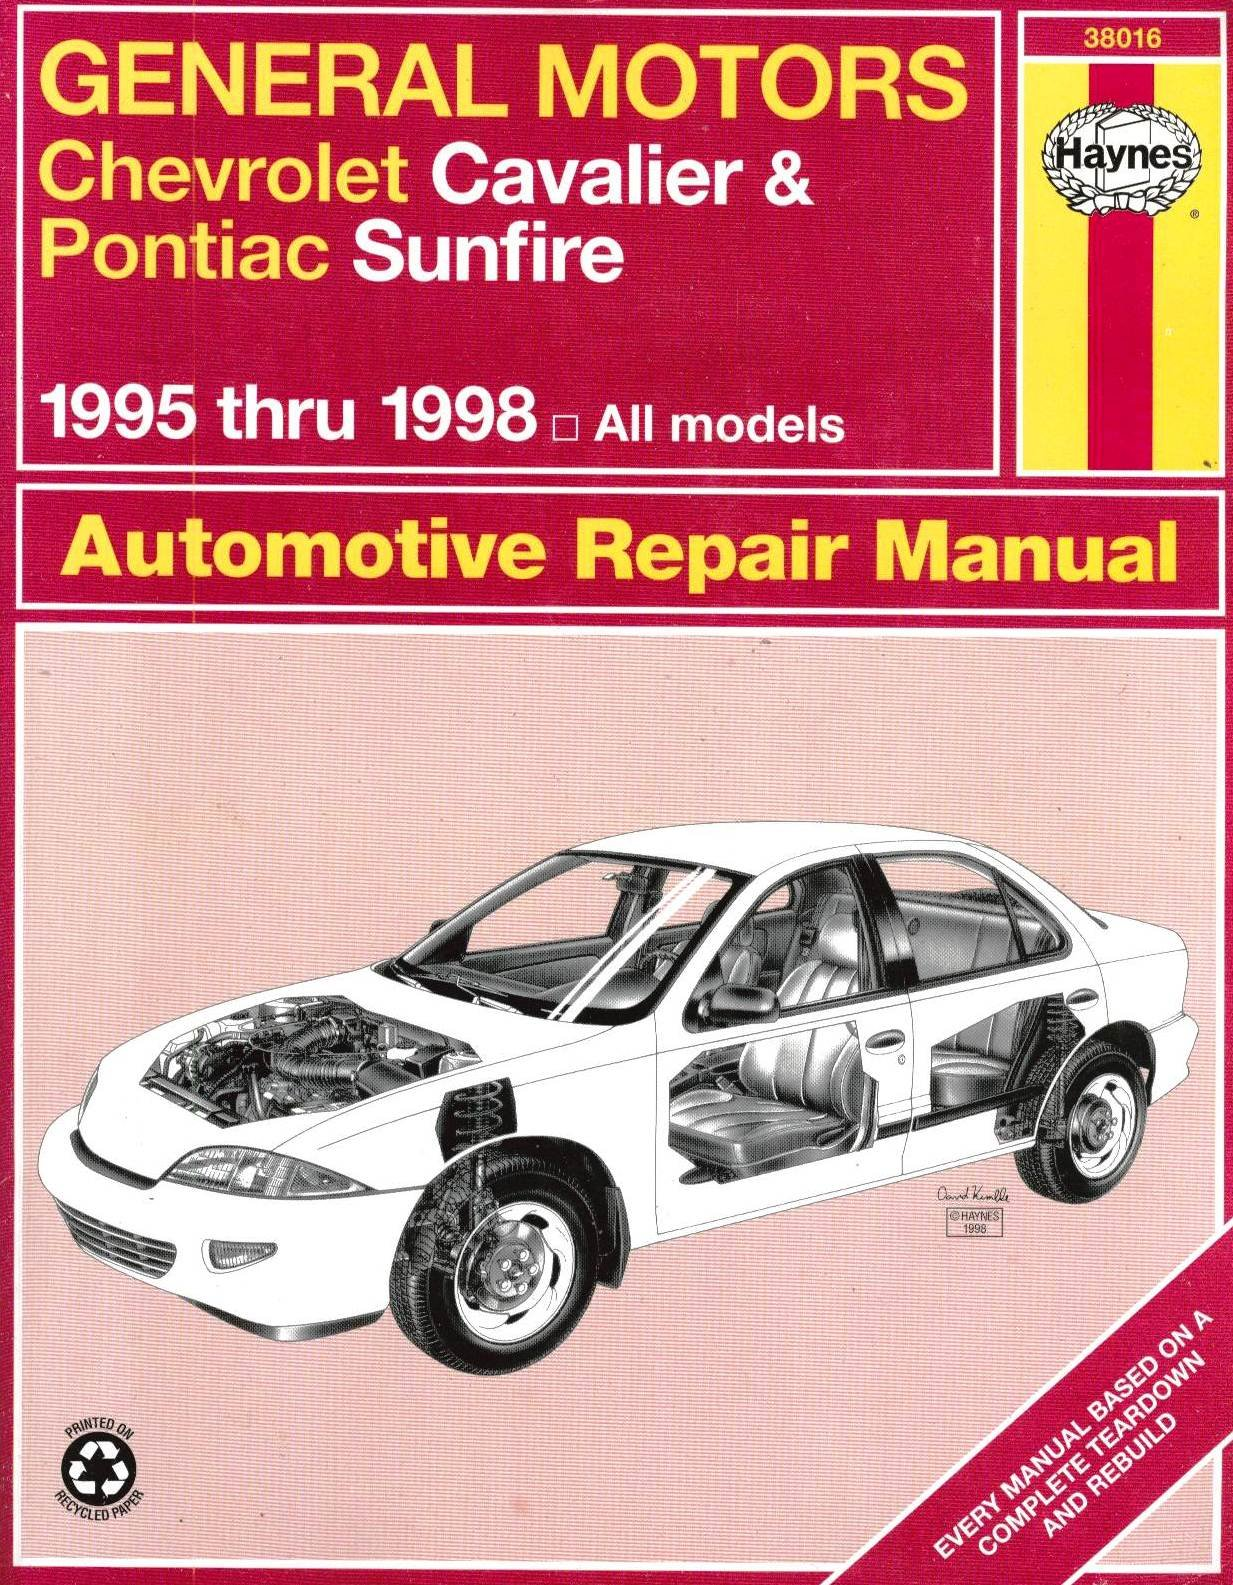 buy gm chevrolet cavalier and pontiac sunfire 95 98 automotive rh amazon in  1997 Pontiac Sunfire 1994 Pontiac Sunfire